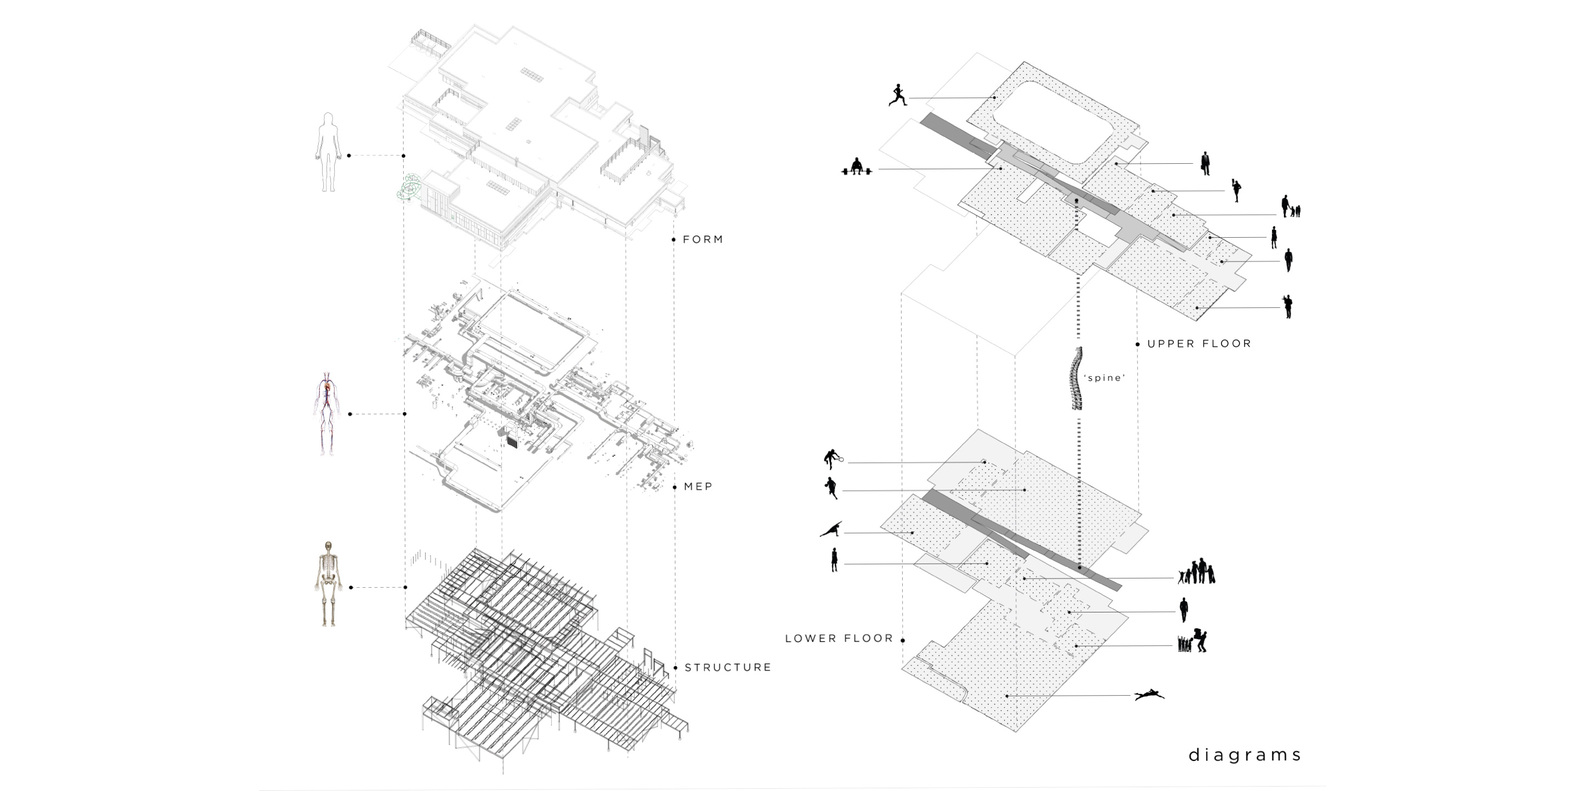 medium resolution of gallery of excelsior springs community center sfs architecture 31 diagram of community center